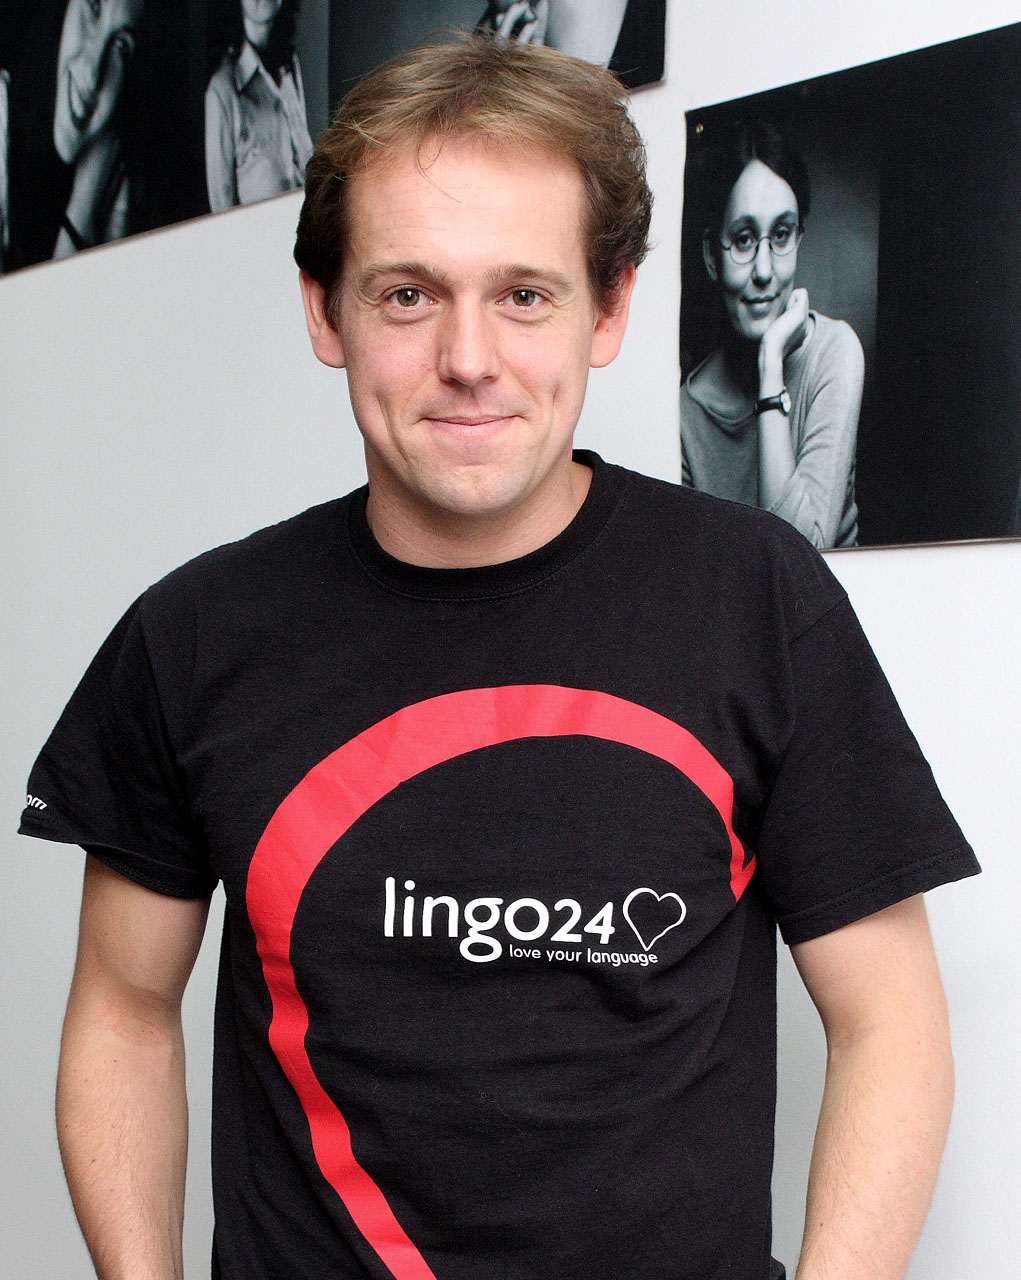 Christian Arno the founder of Lingo24, Inc.